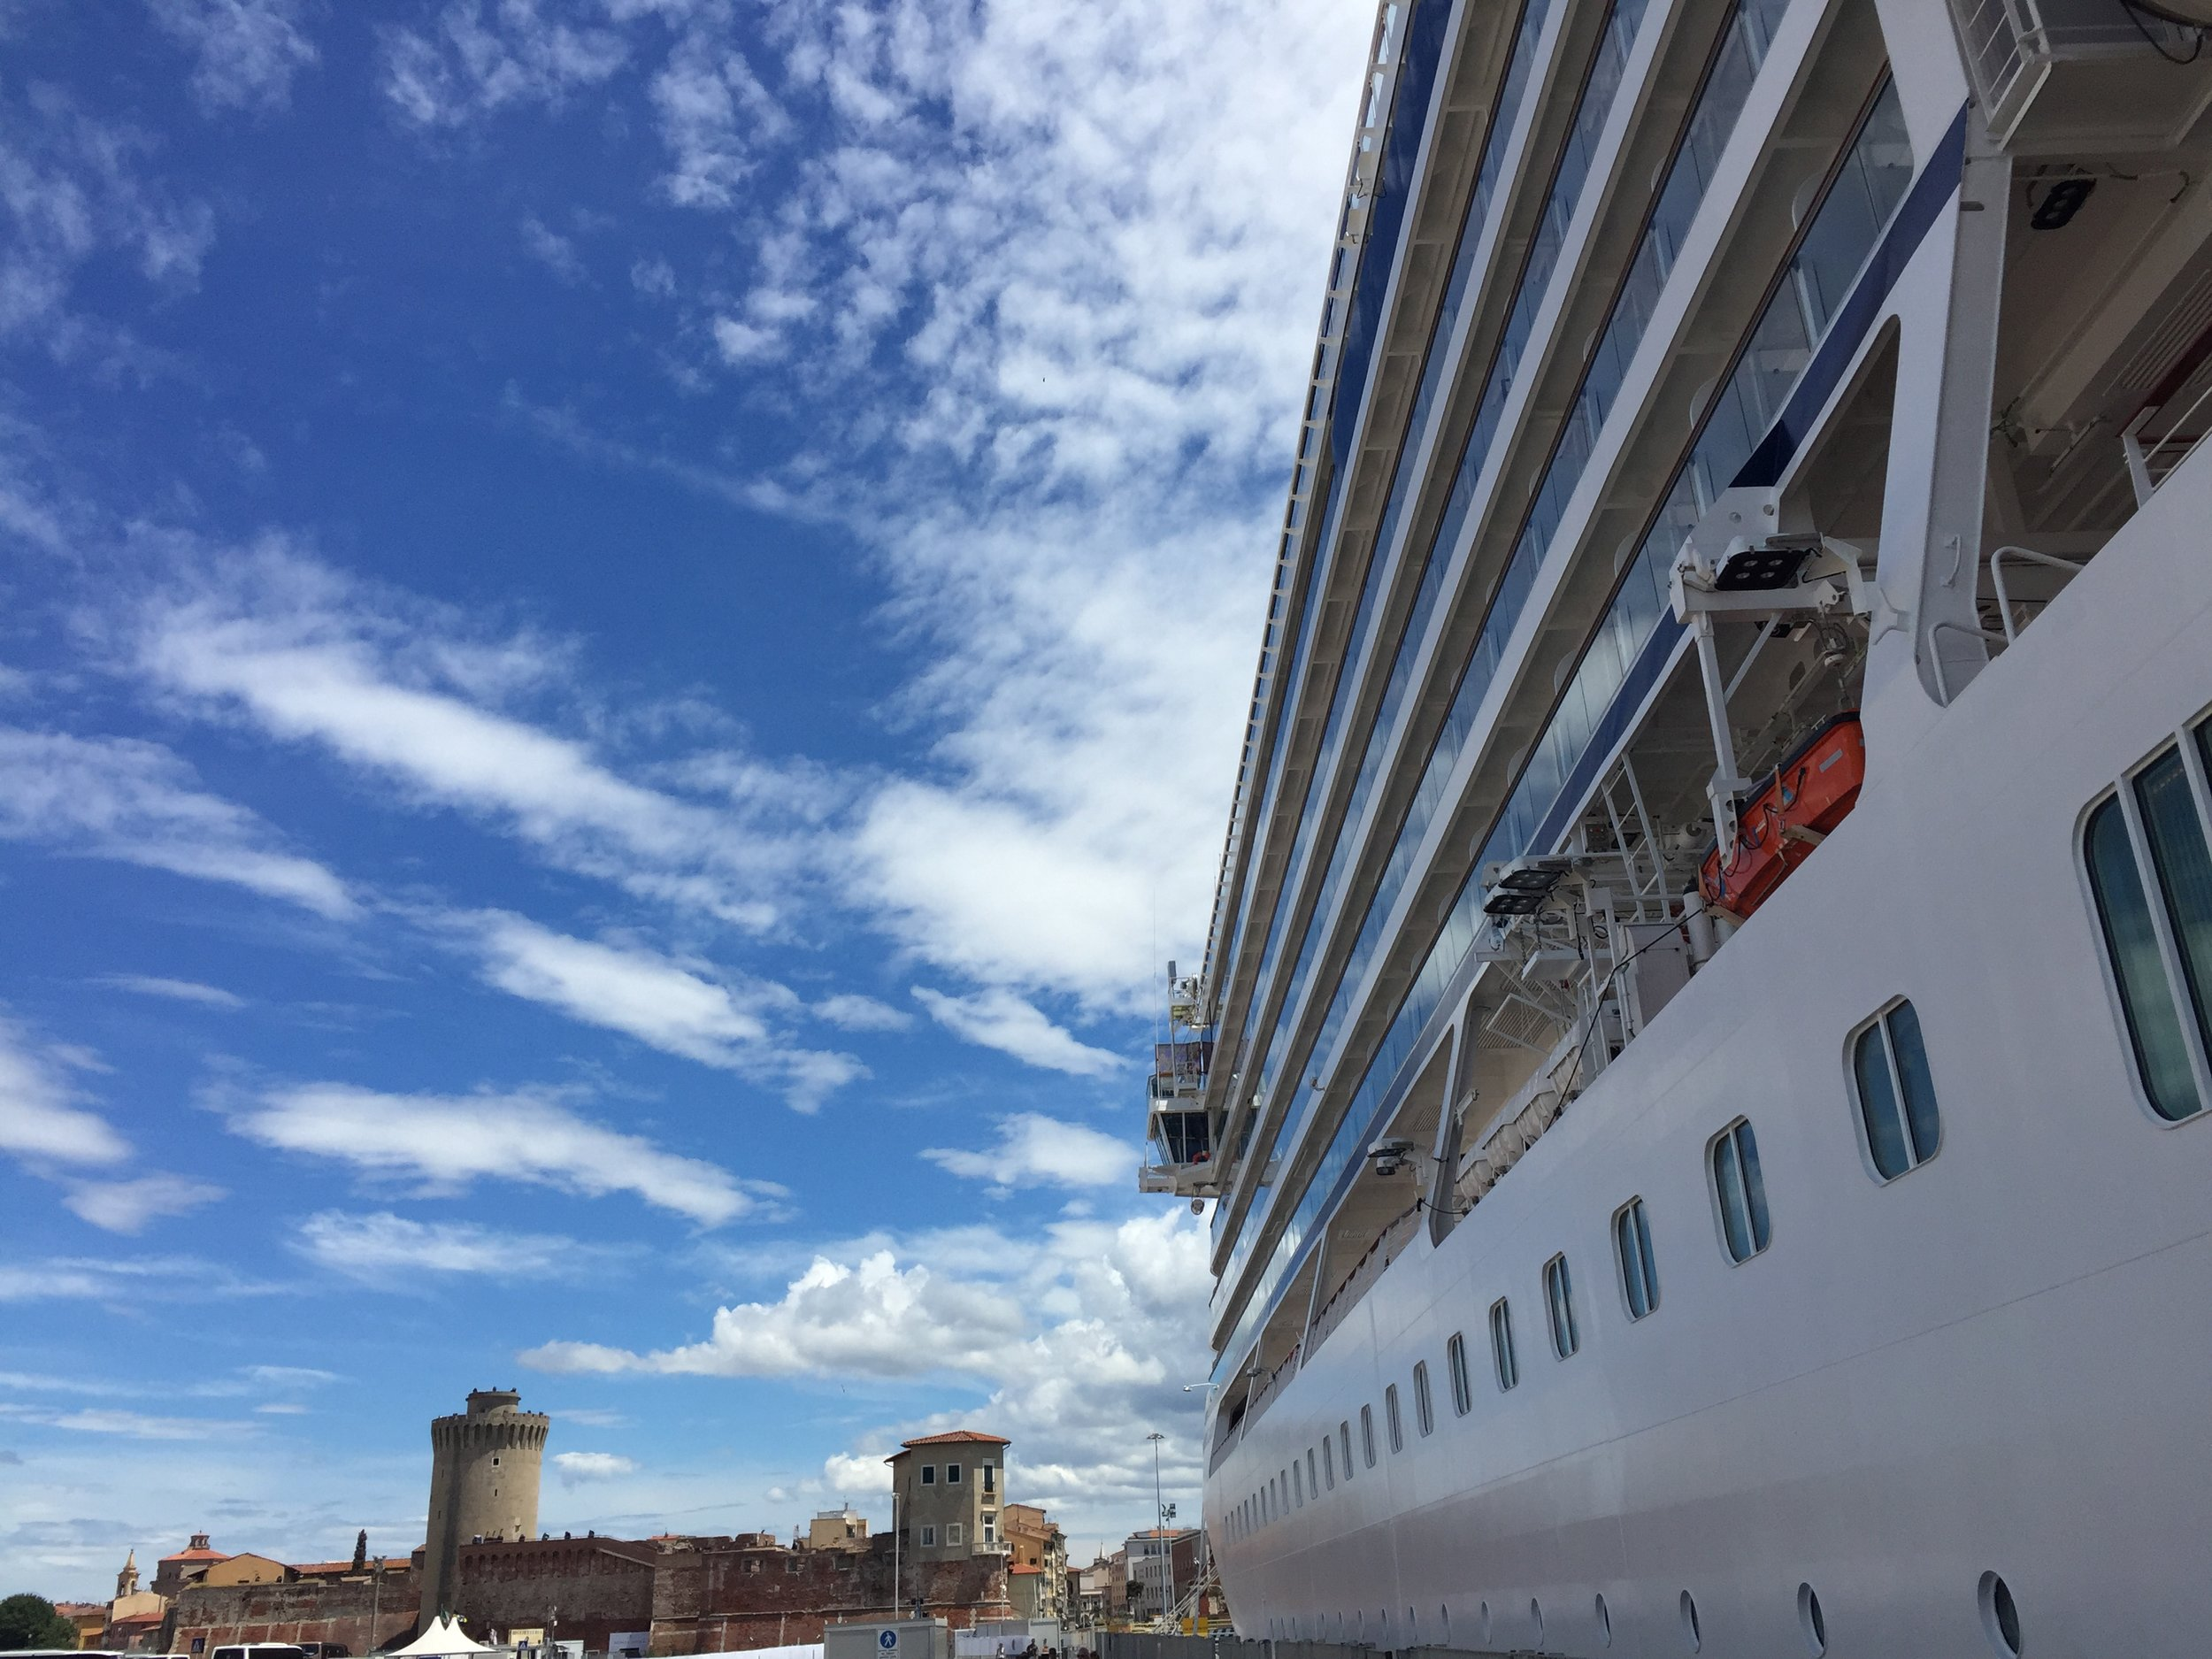 Viking Orion's modern lines next to Livorno's old port fortress